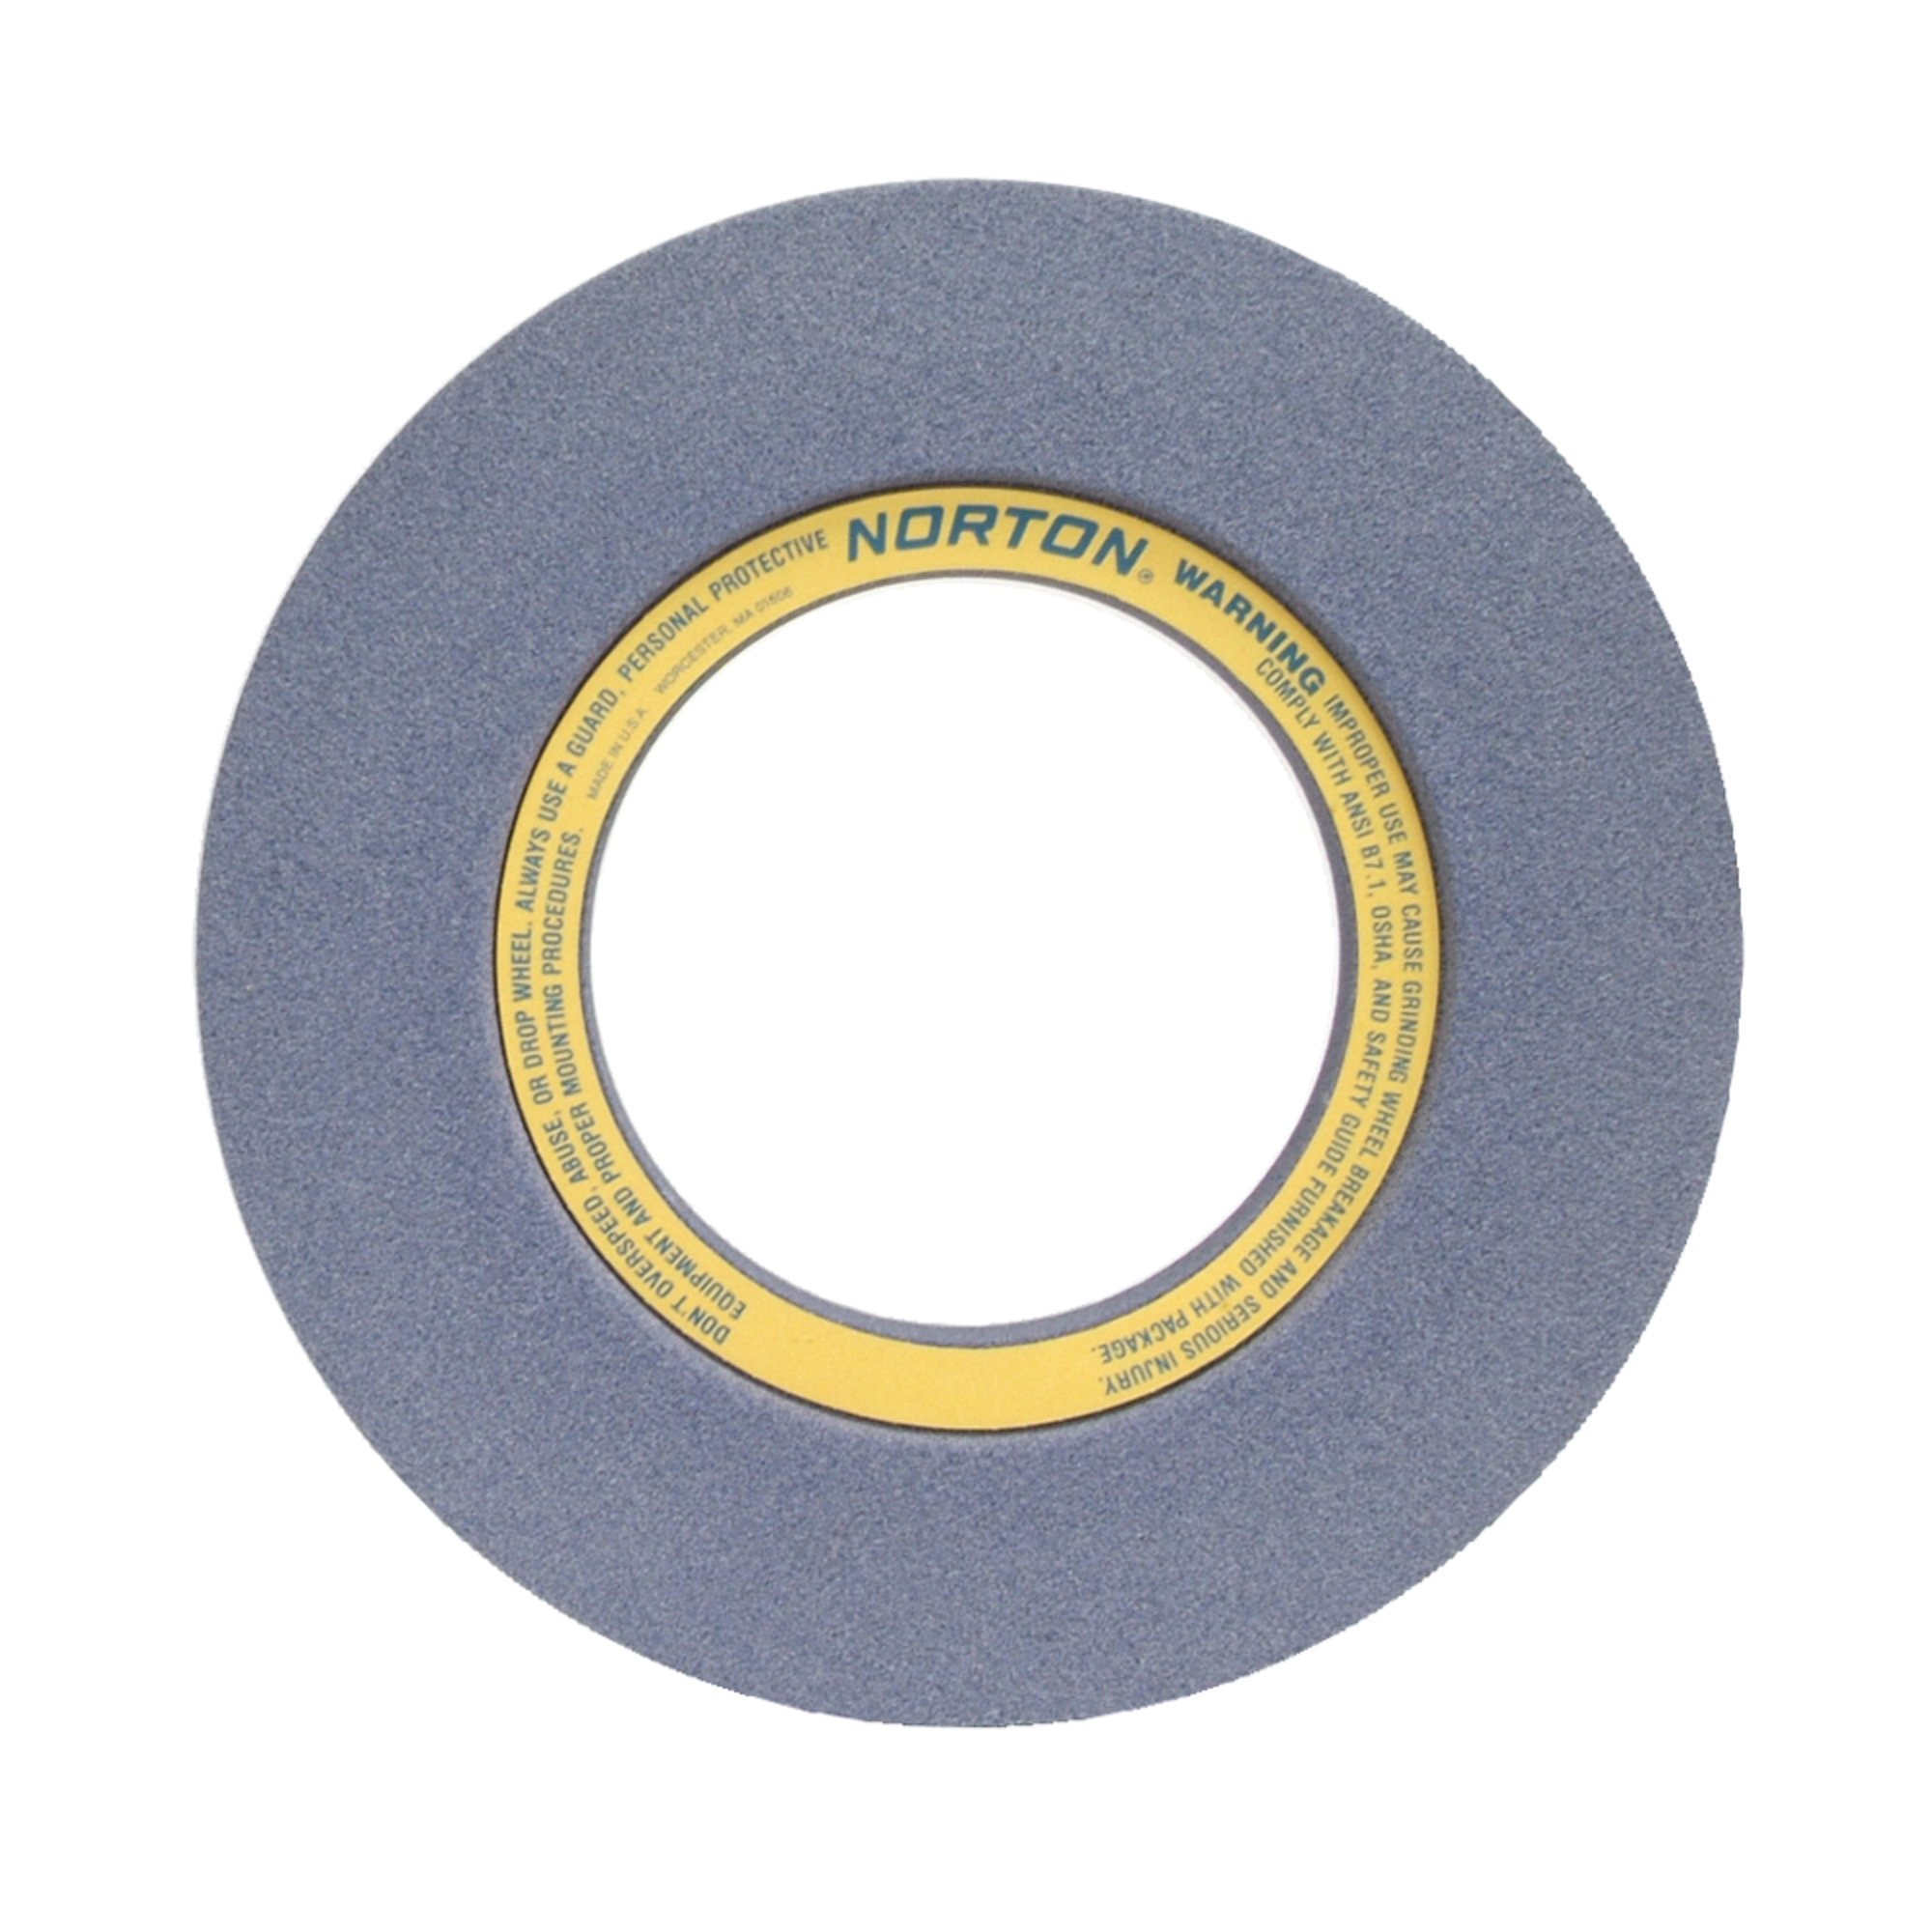 Norton® 69078665575 32A 2-Side Recessed Surface and Cylindrical Grinding Wheel, 20 in Dia x 3 in THK, 10 in Center Hole, 46 Grit, Aluminum Oxide Abrasive